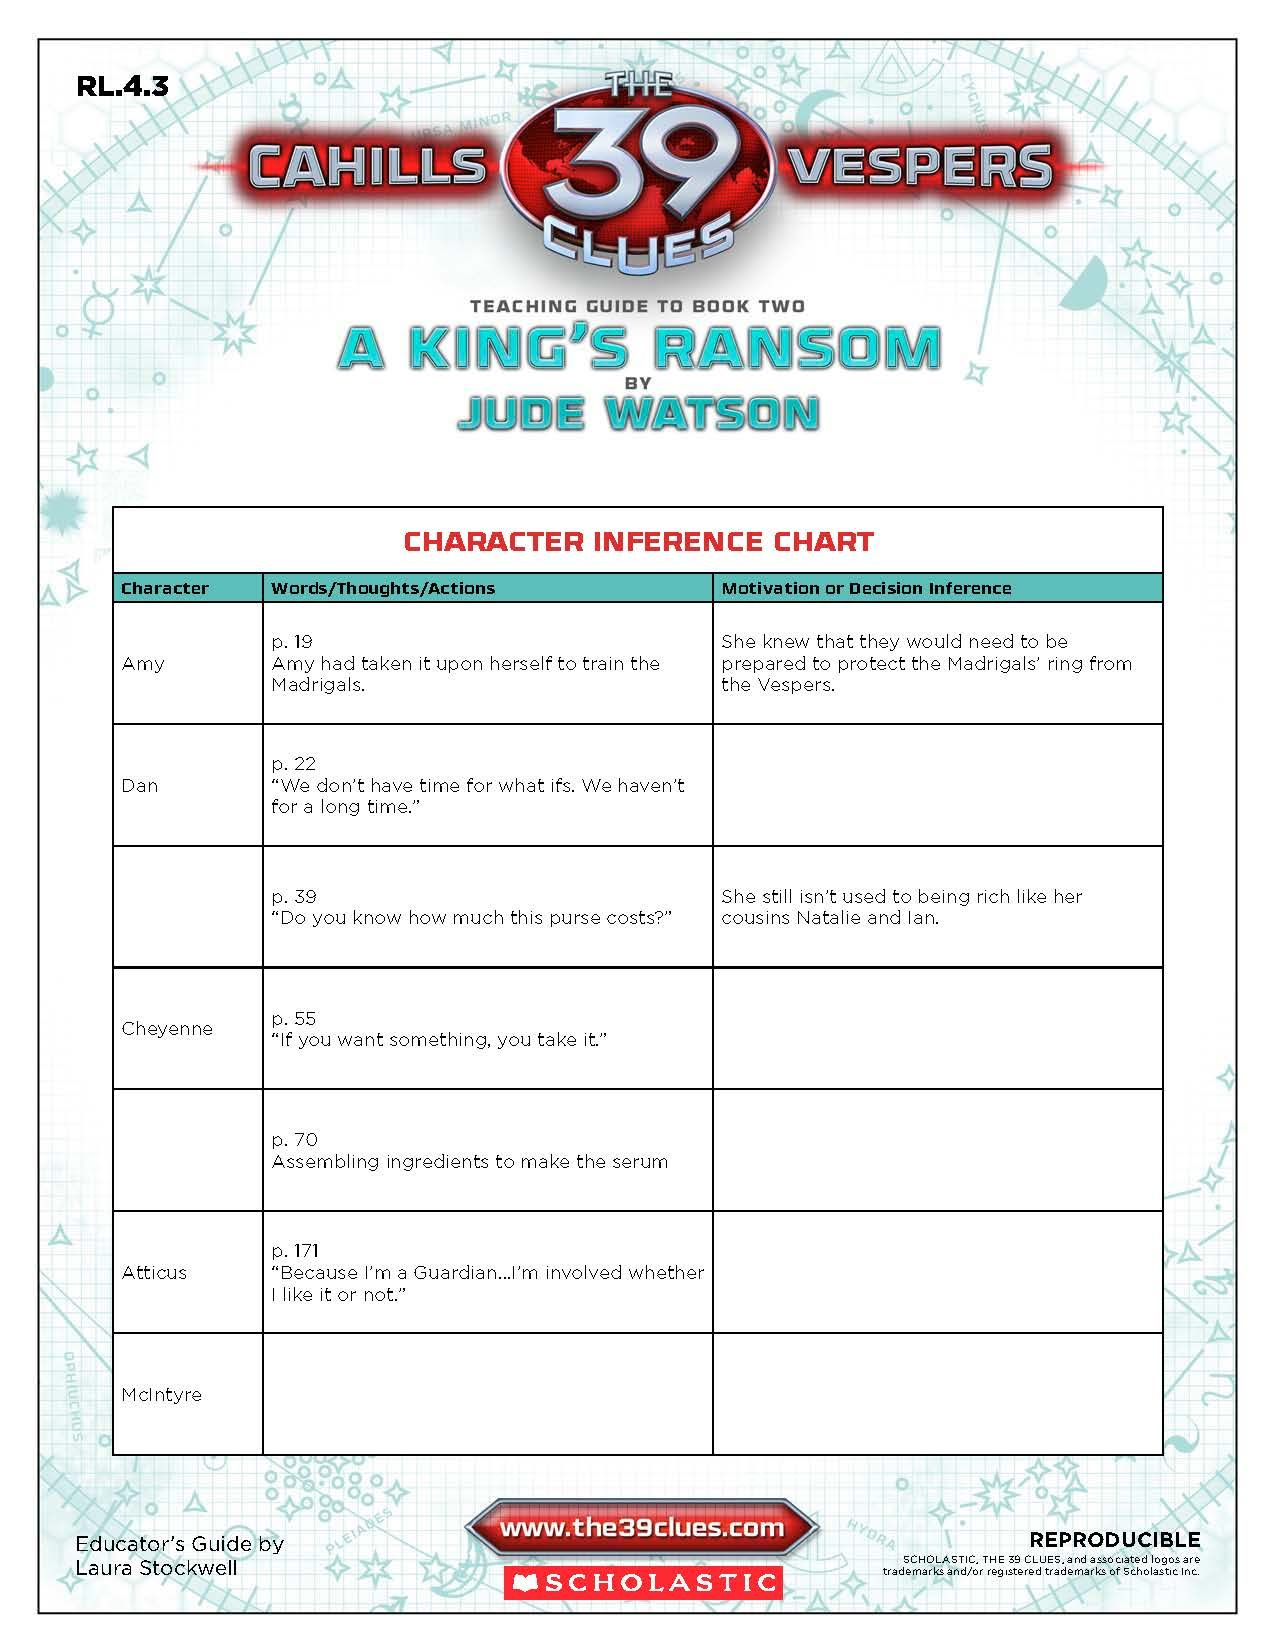 free common core ready curriculum guide and printable